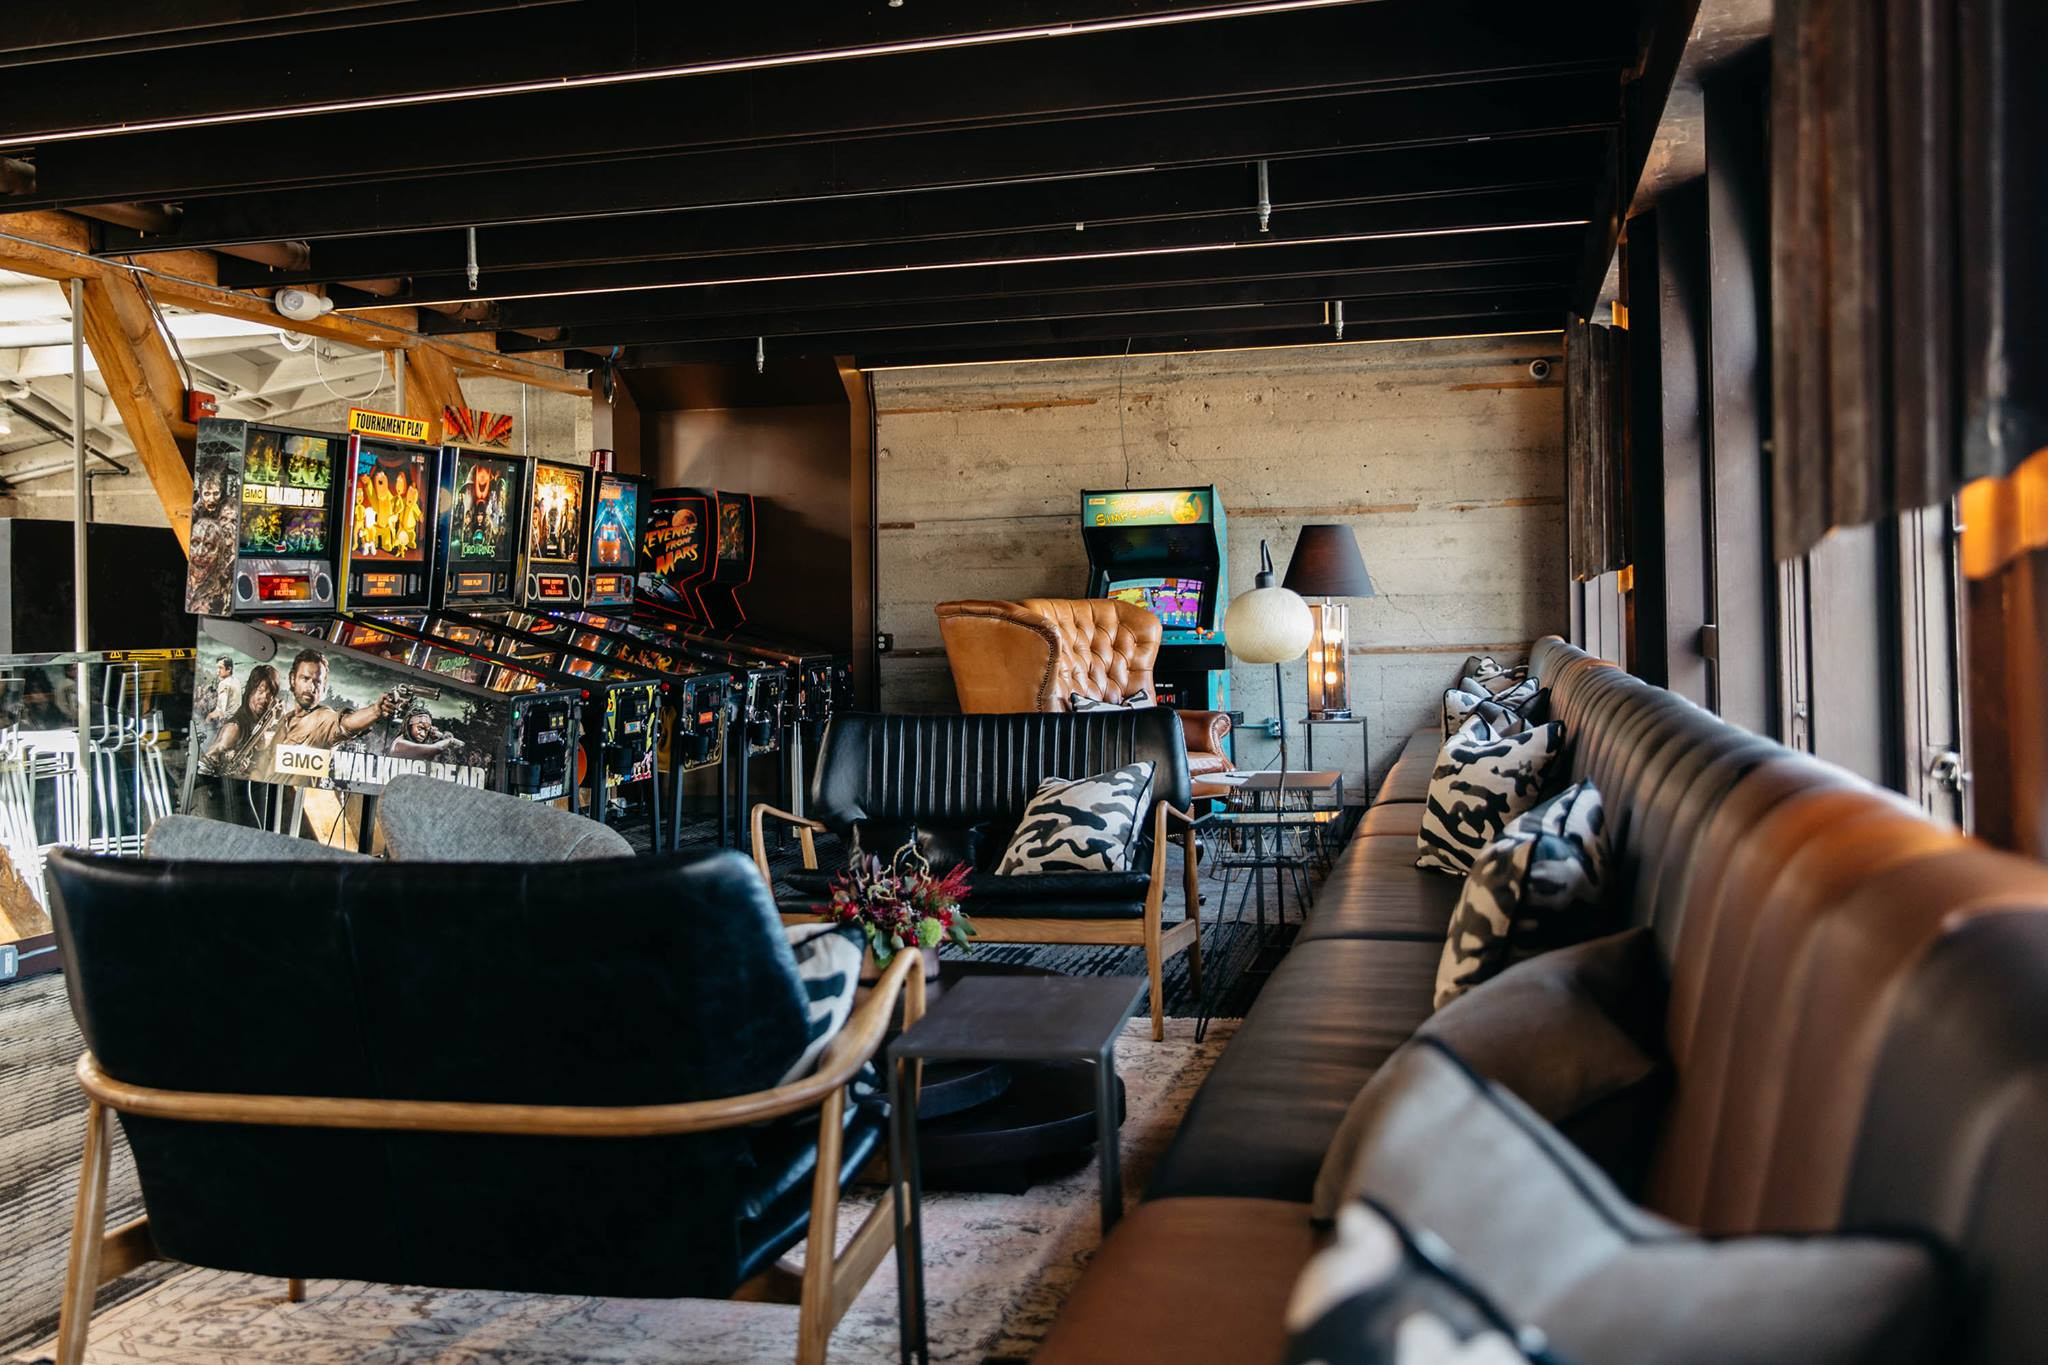 Best ideas about Coin Op Game Room Sf . Save or Pin Best First Date Spots in San Francisco Trinity SF Now.